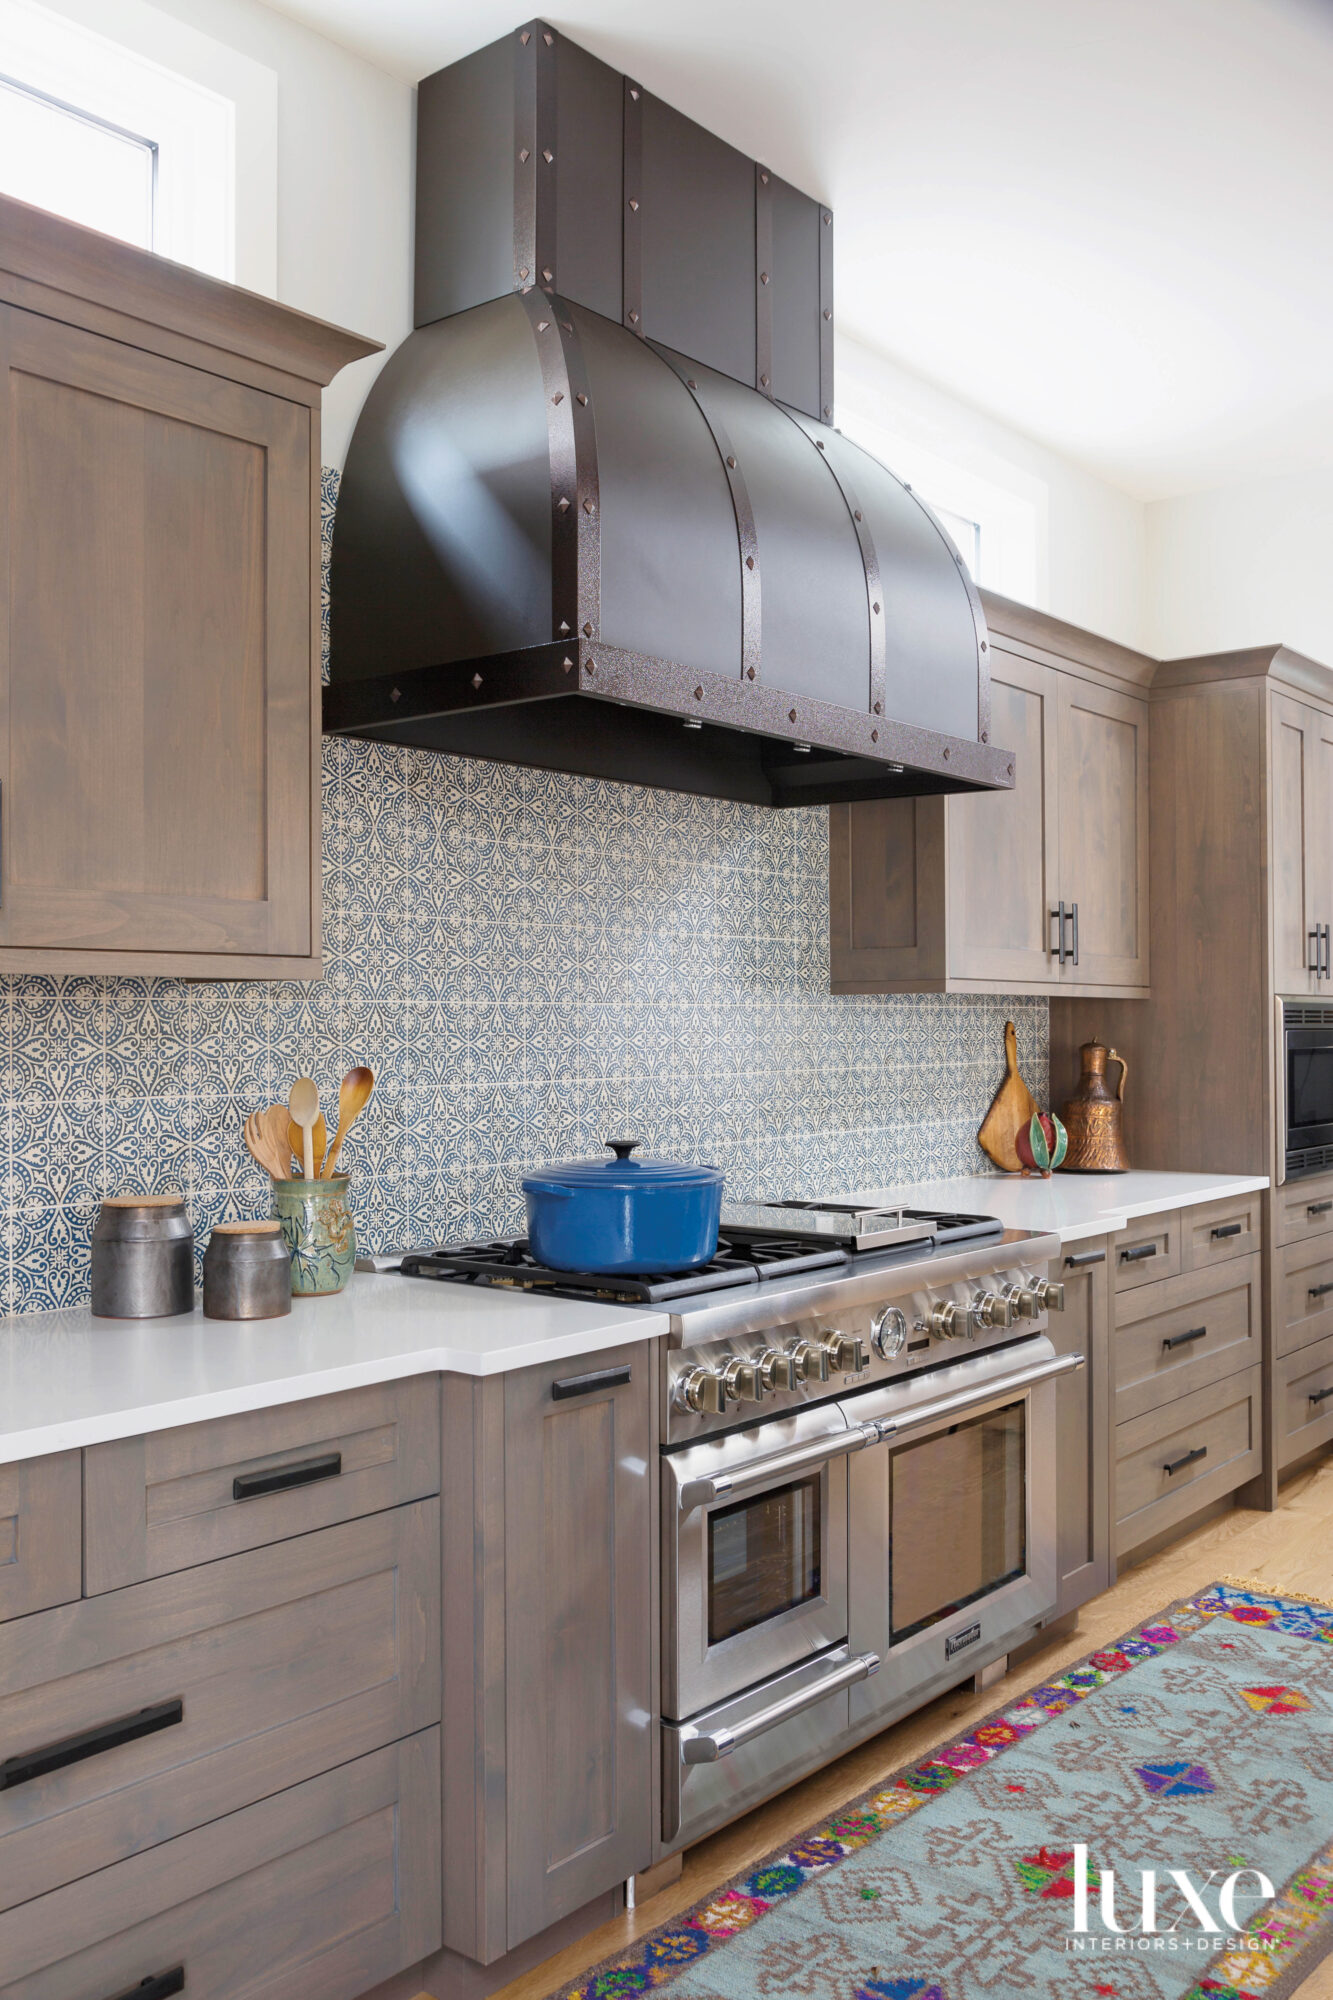 A large range hood with...